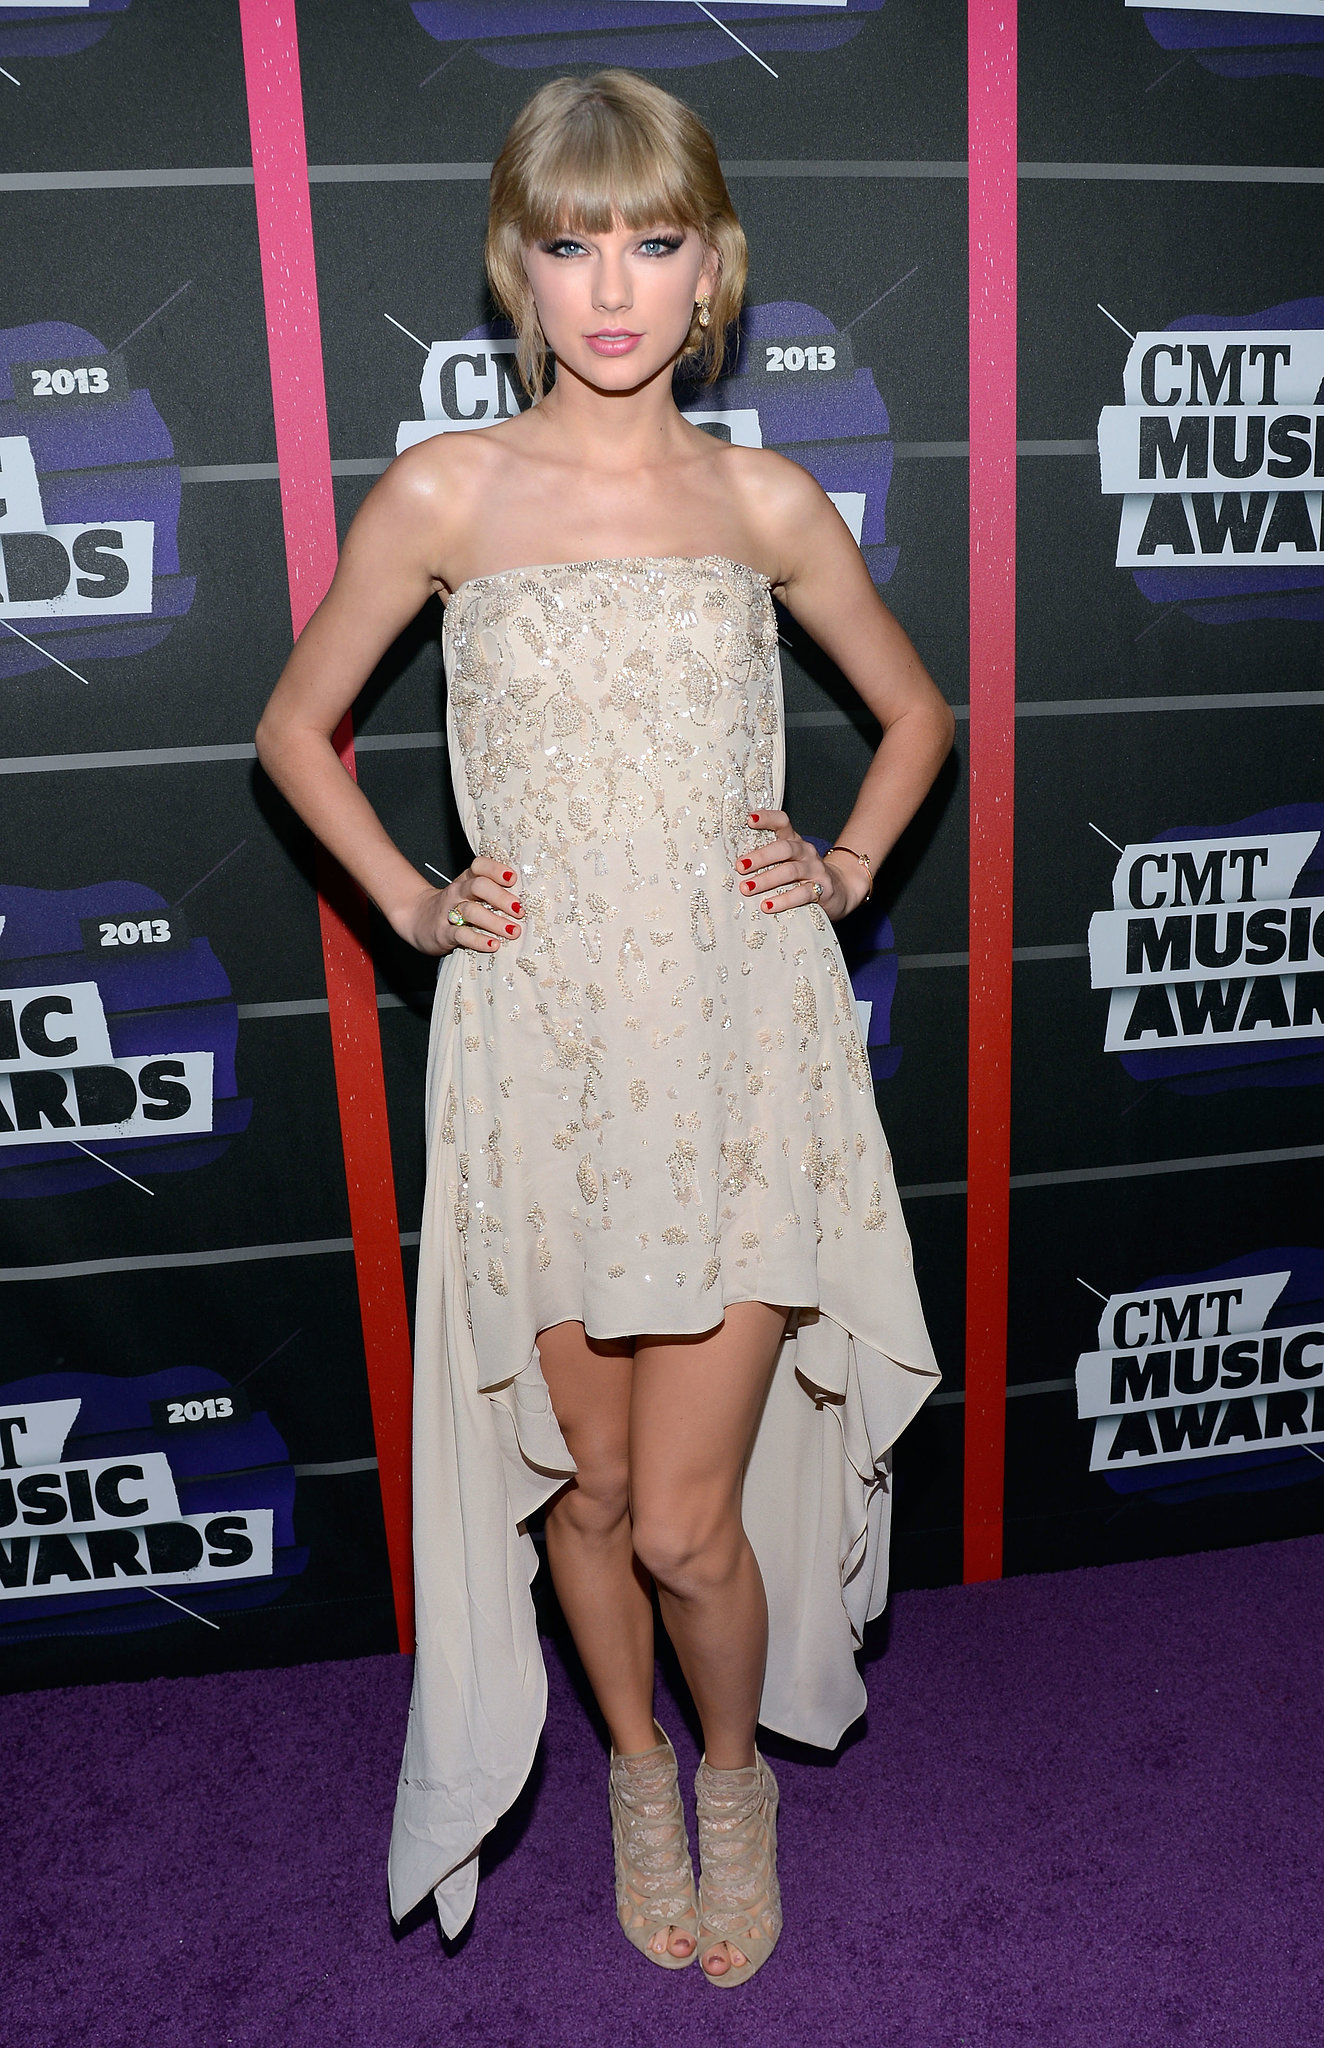 At the 2013 CMT Awards, Taylor Swift ditched strappy sandals for lace ...